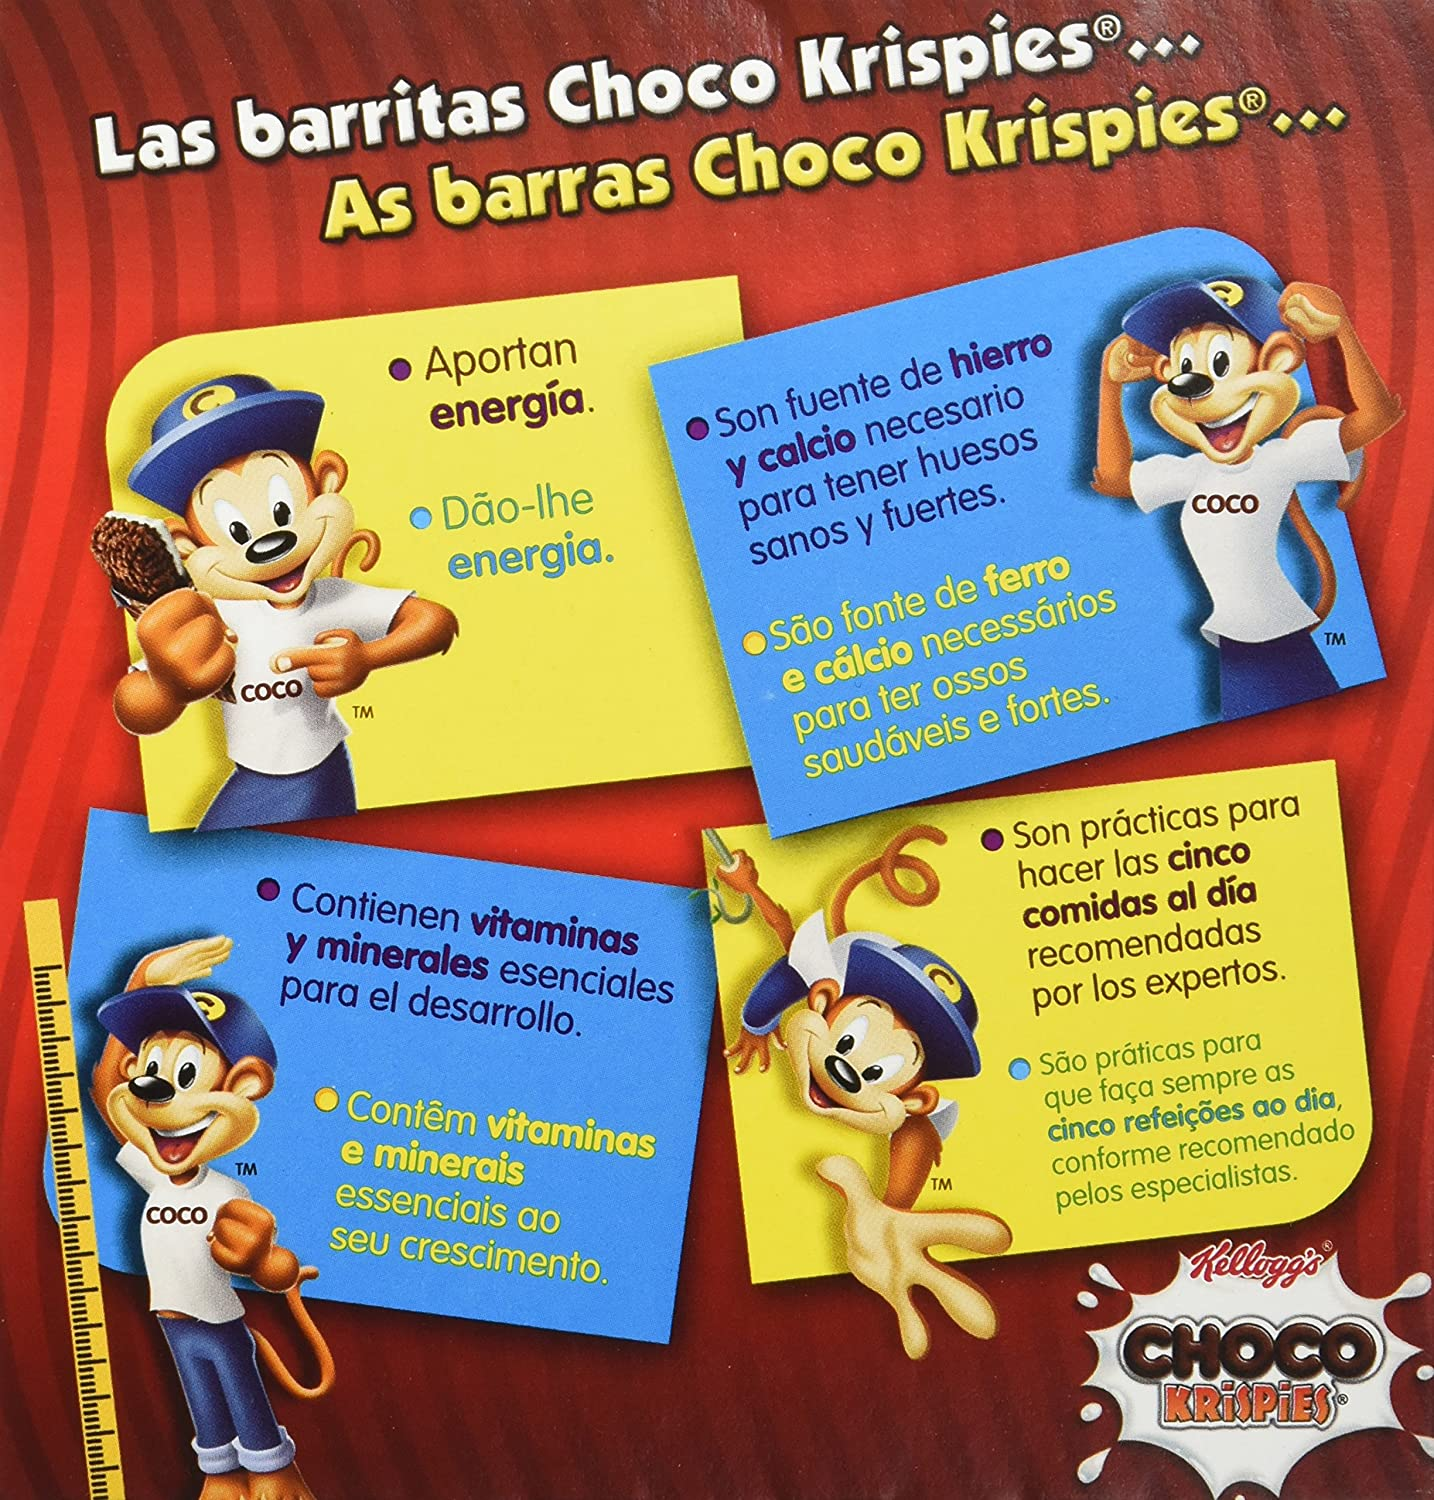 Choco Krispies Barrita de Cereales con Cacao y leche - Pack de 6 x 20 g - Total: 120 g: Amazon.es: Amazon Pantry